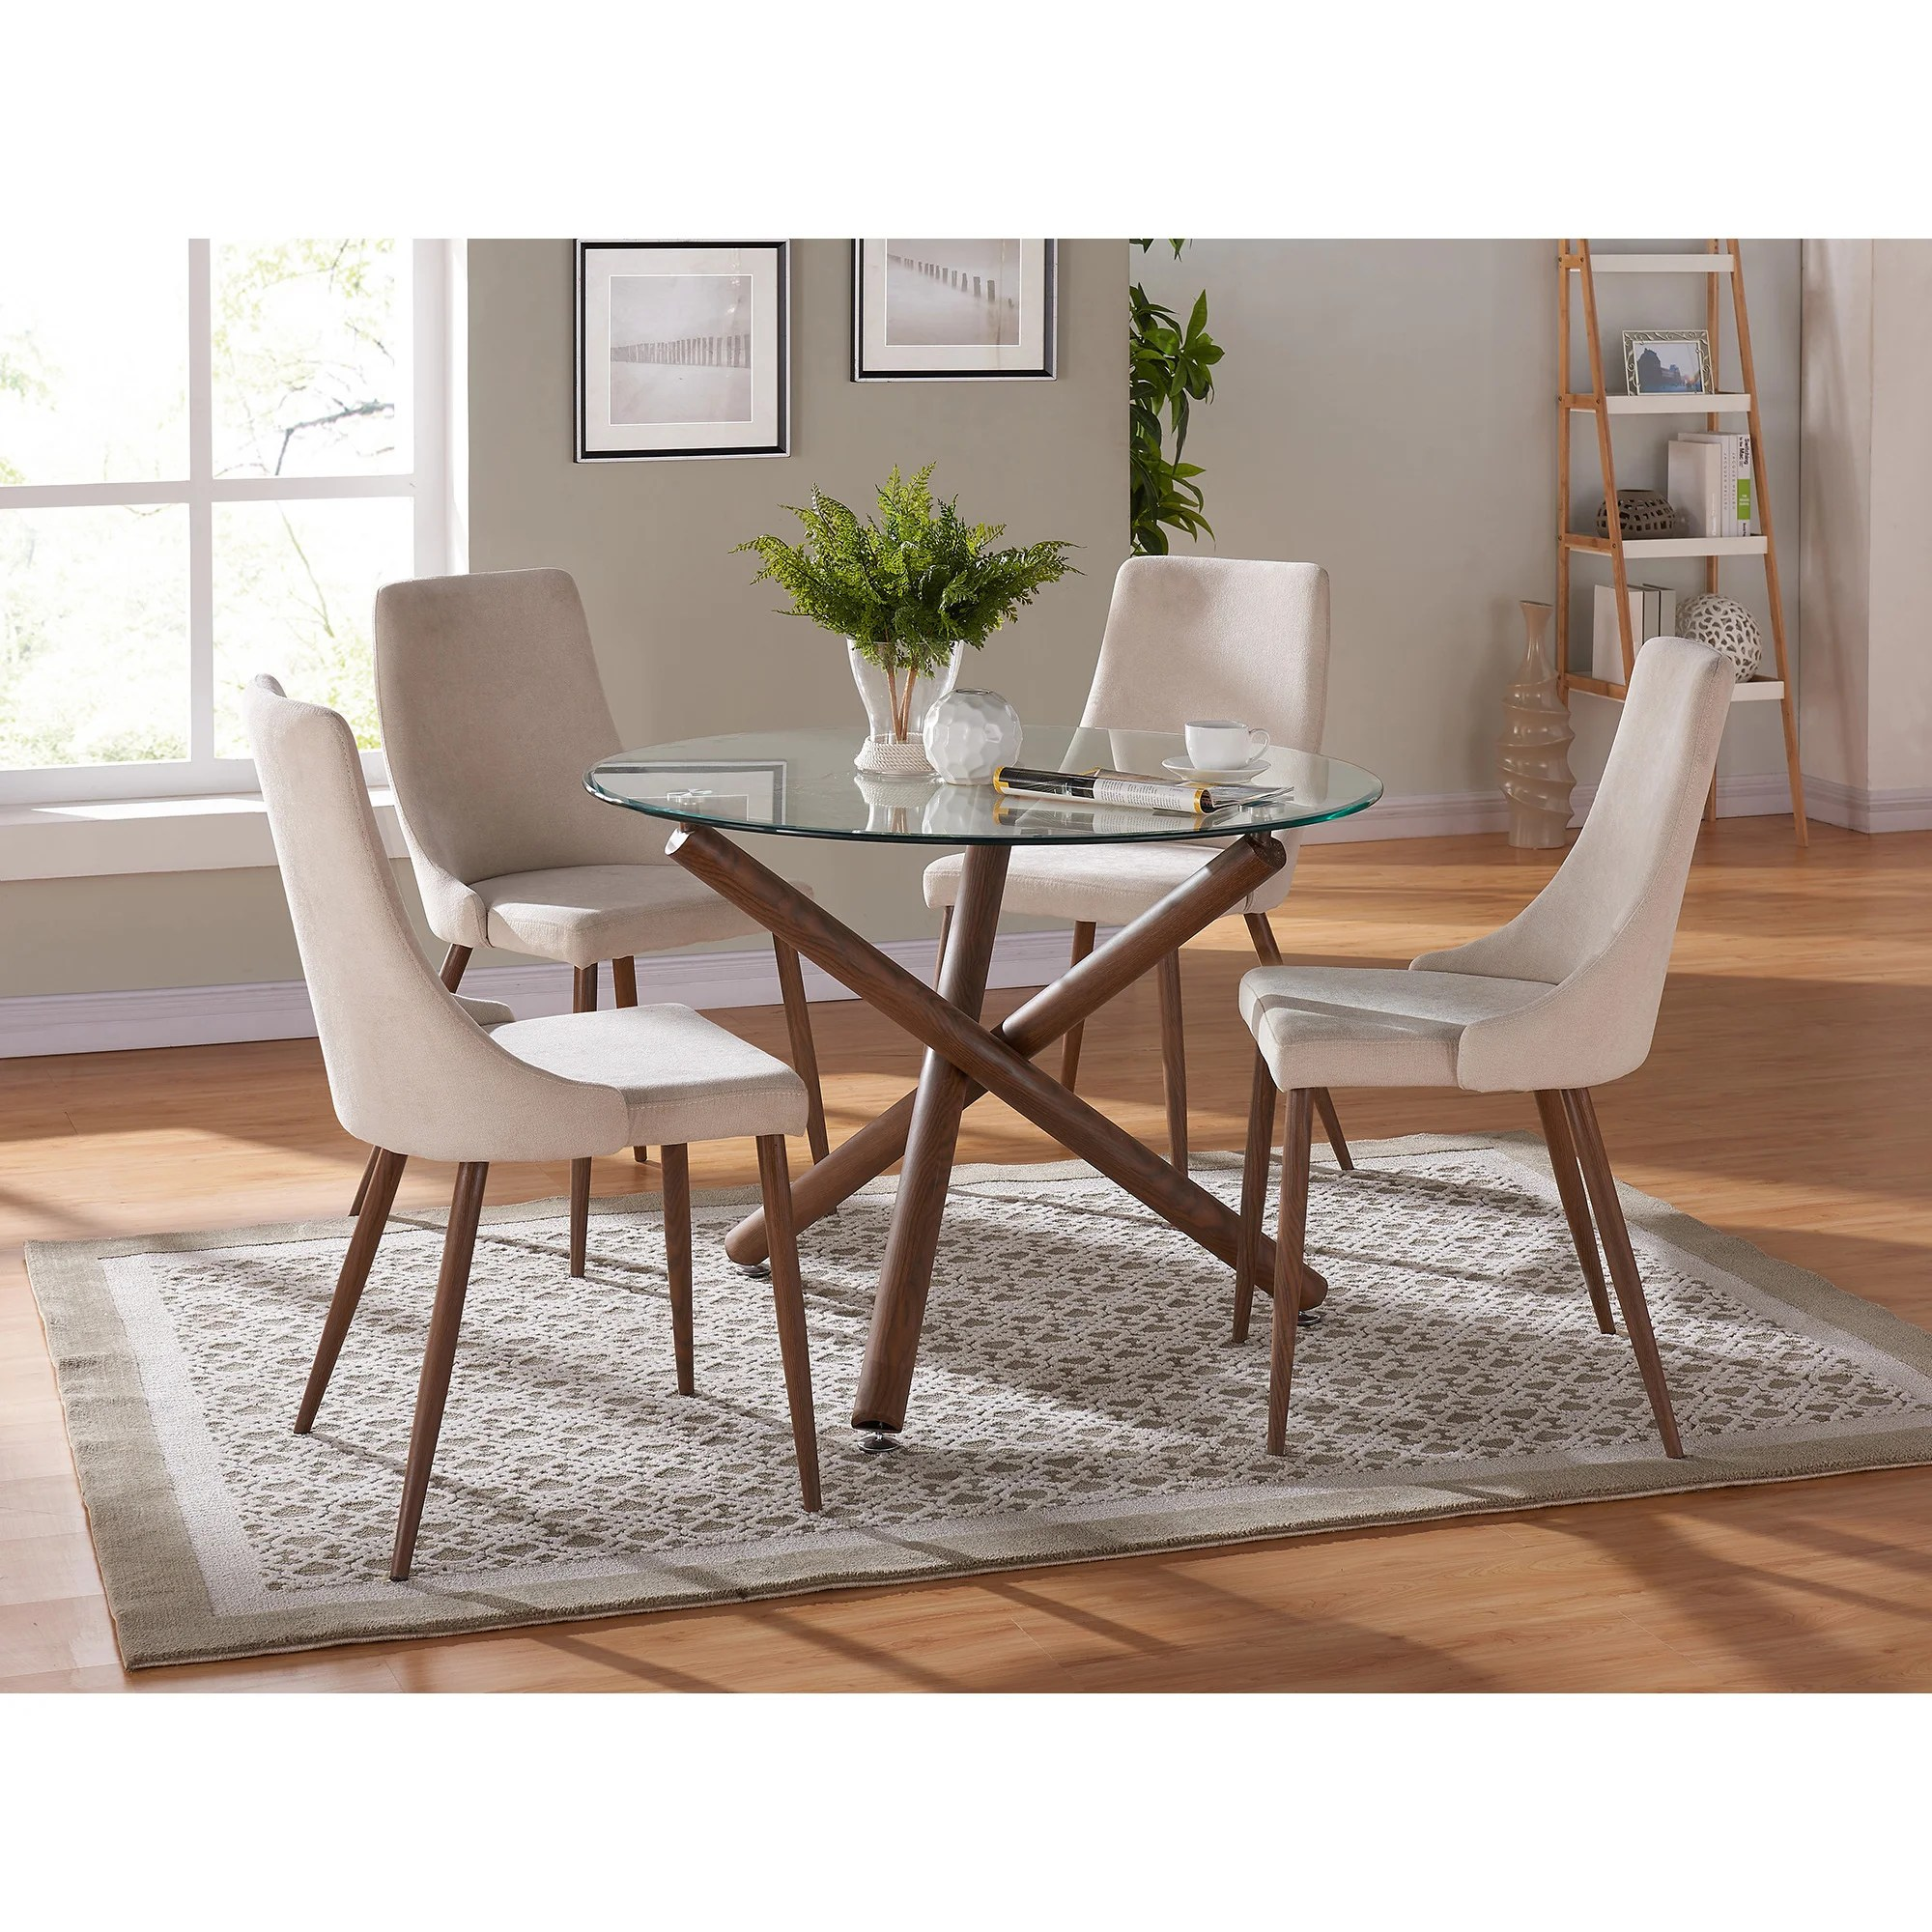 Dining Room Chair Sets Carson Carrington Kaskinen Dining Chair Set Of 2